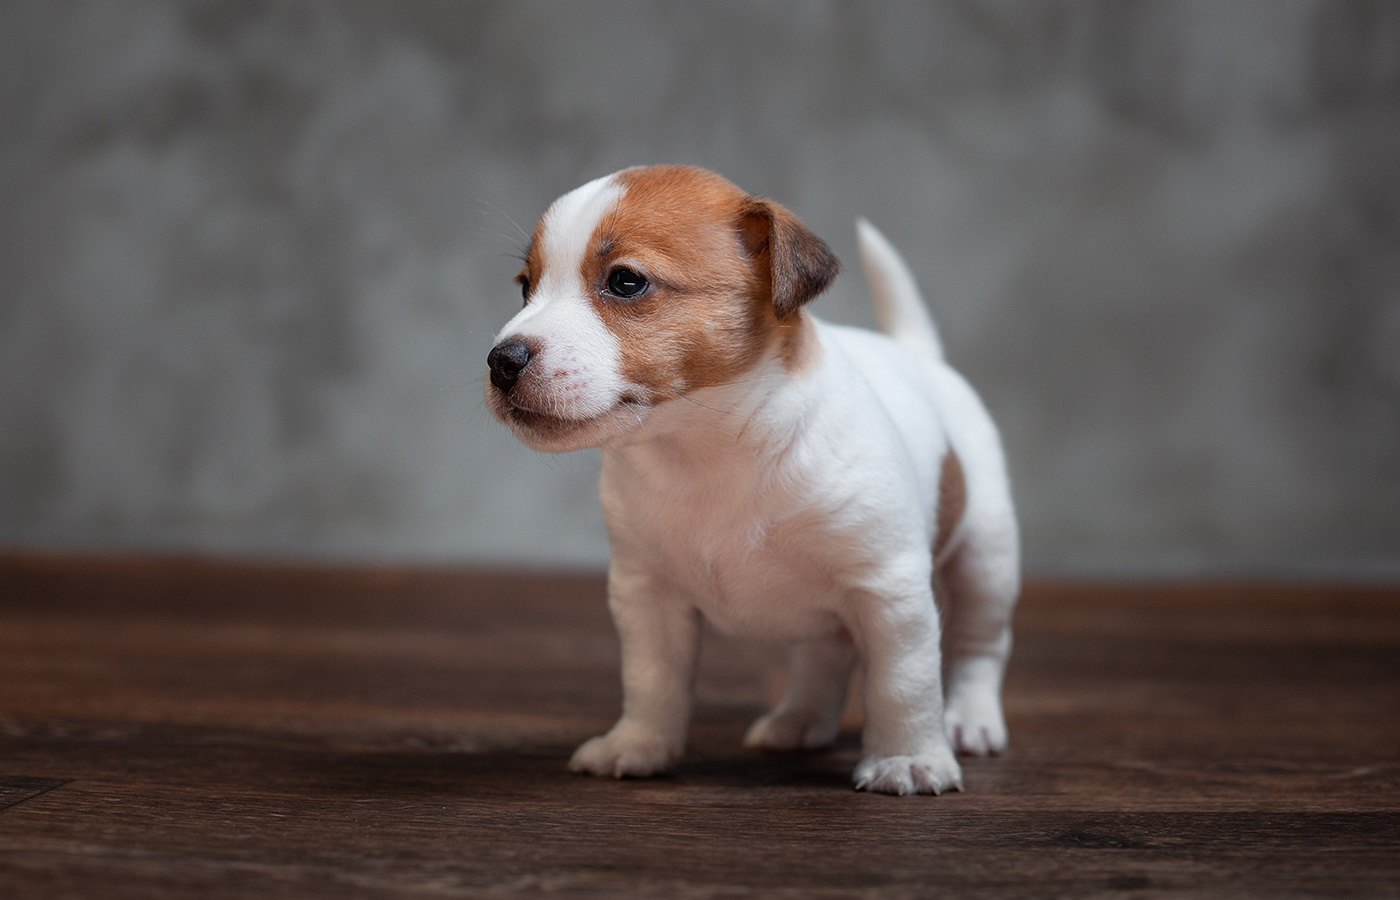 Jack Russell Terrier puppy with brown spots stands on the wooden floor against the background of a gray wall. - Image